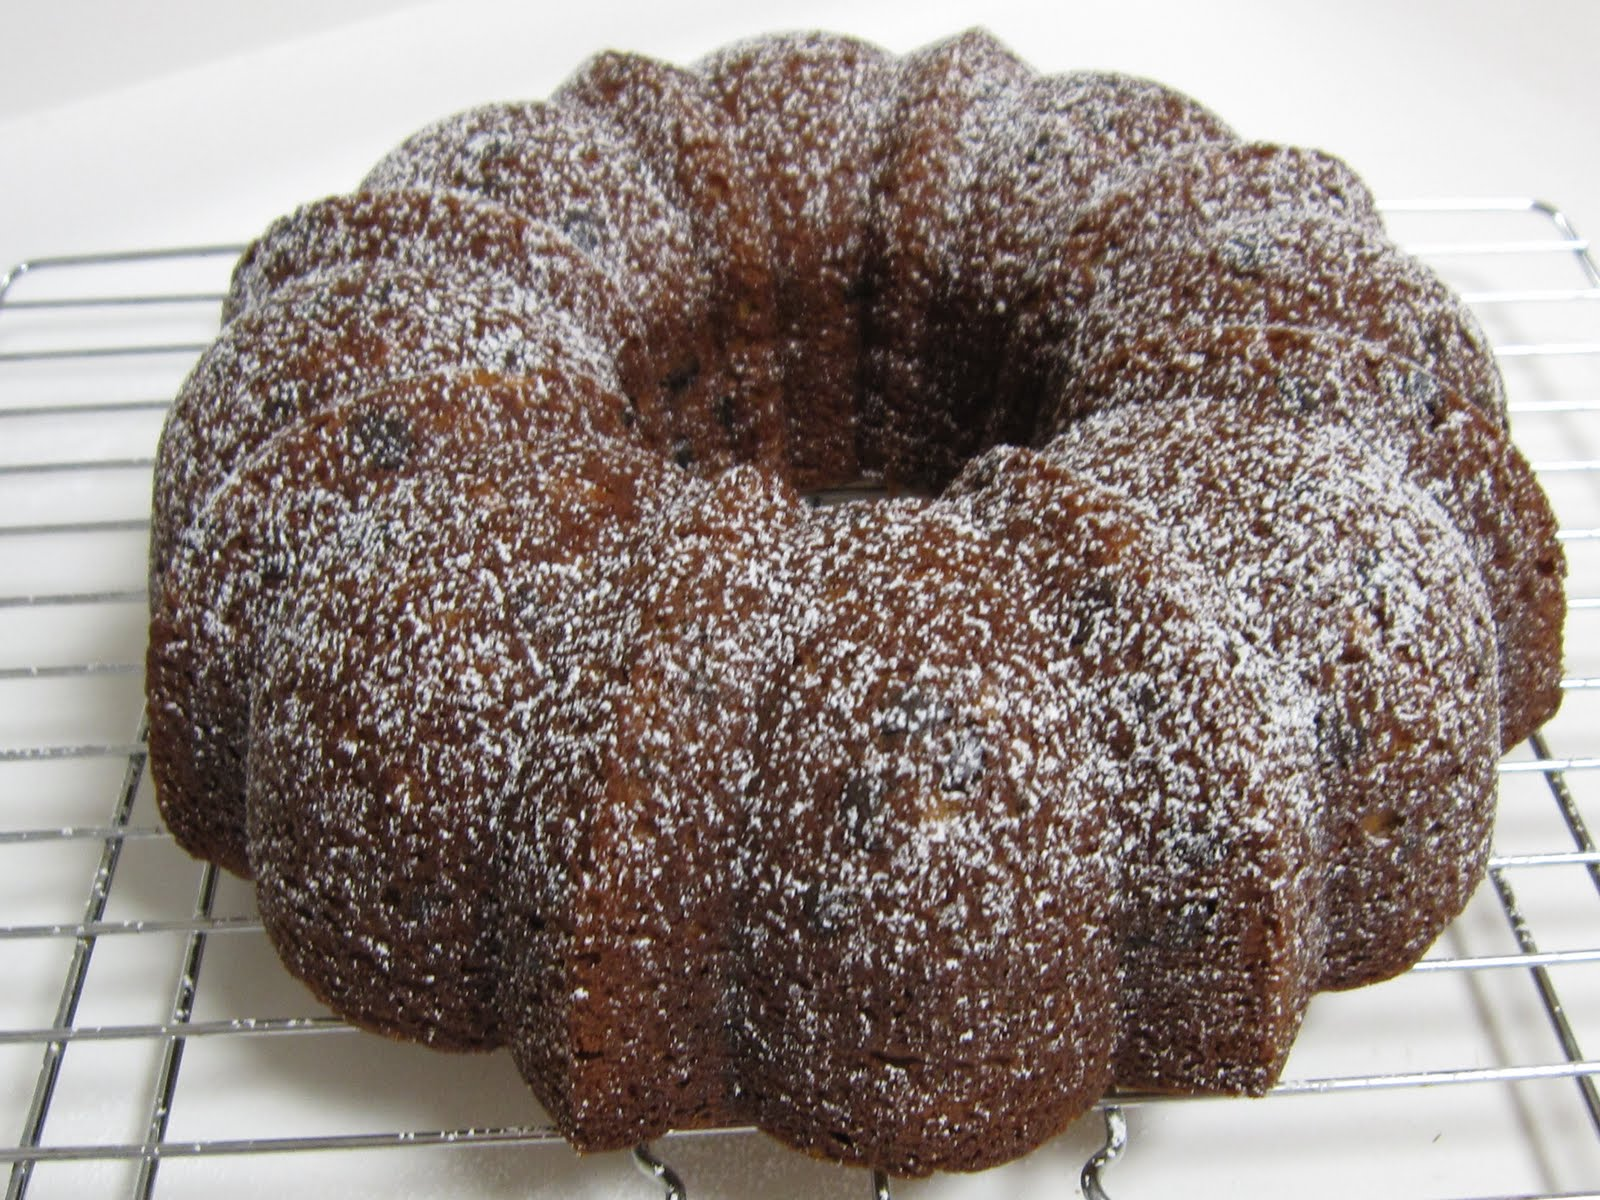 Hannah in the Kitchen: Banana Chocolate Chip Bundt Cake